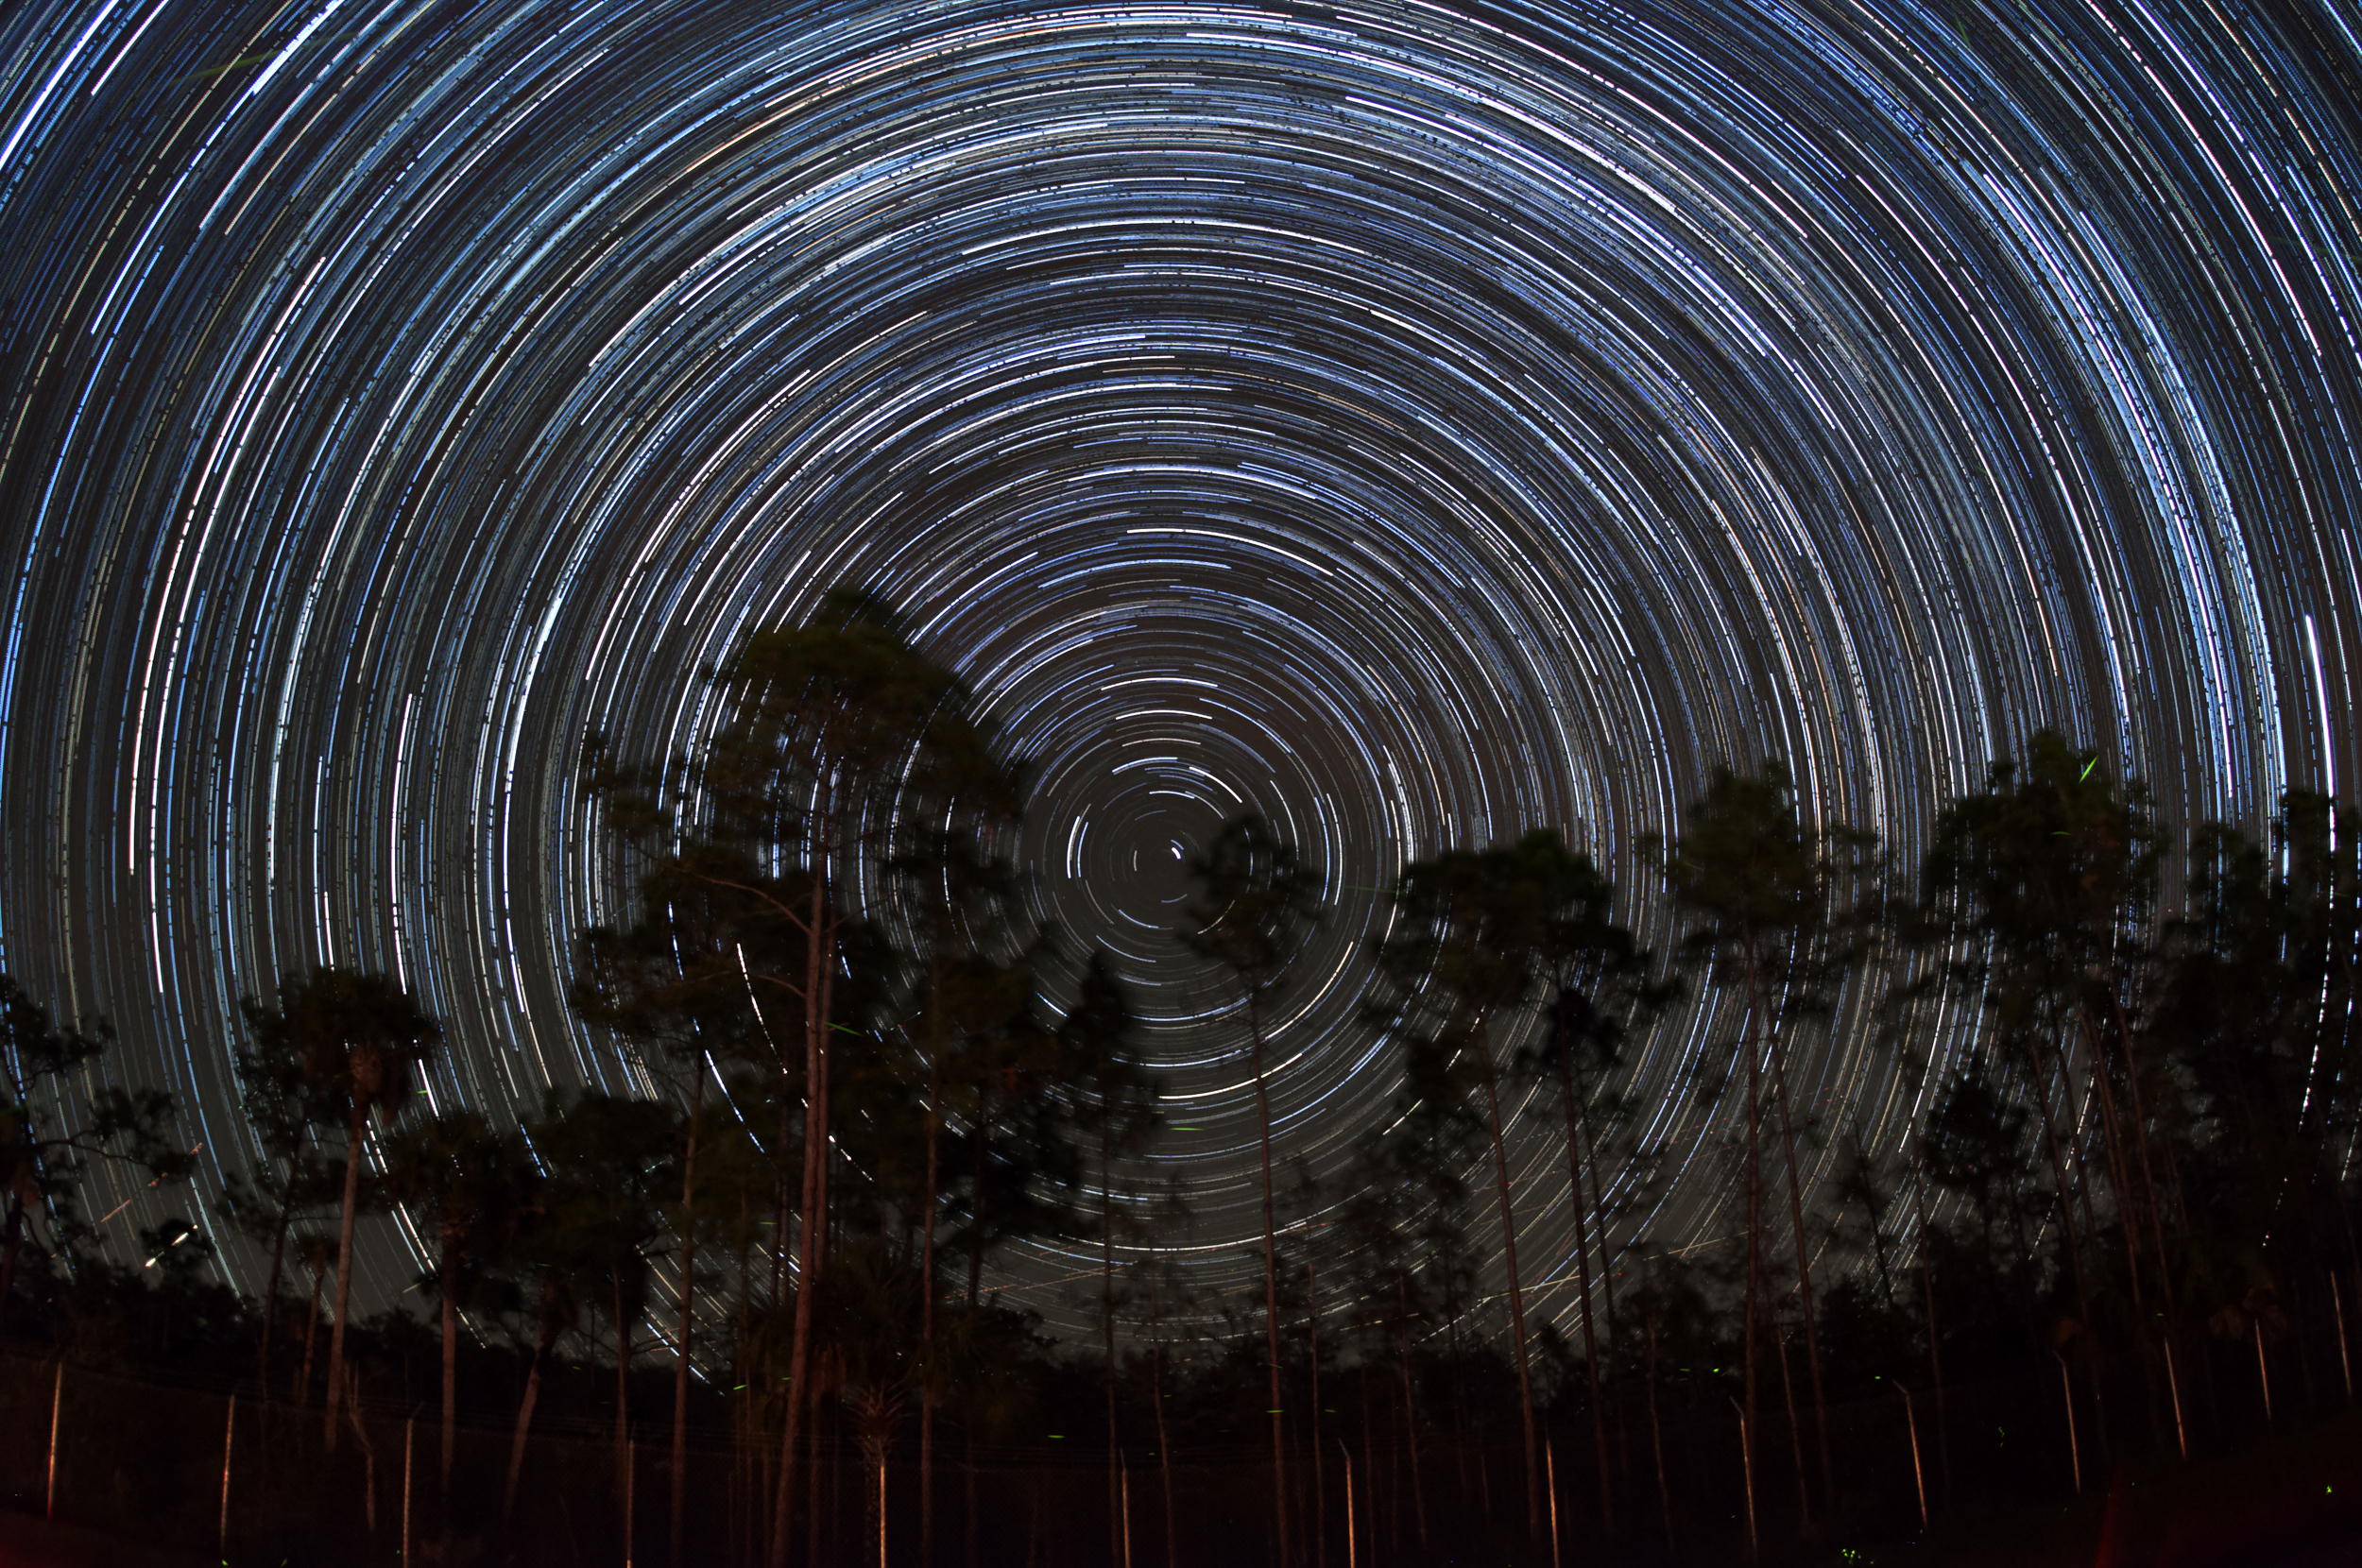 20 second exposures, iso 1250 at f/2.5, sigma 15mm 180 fish-eye lens.